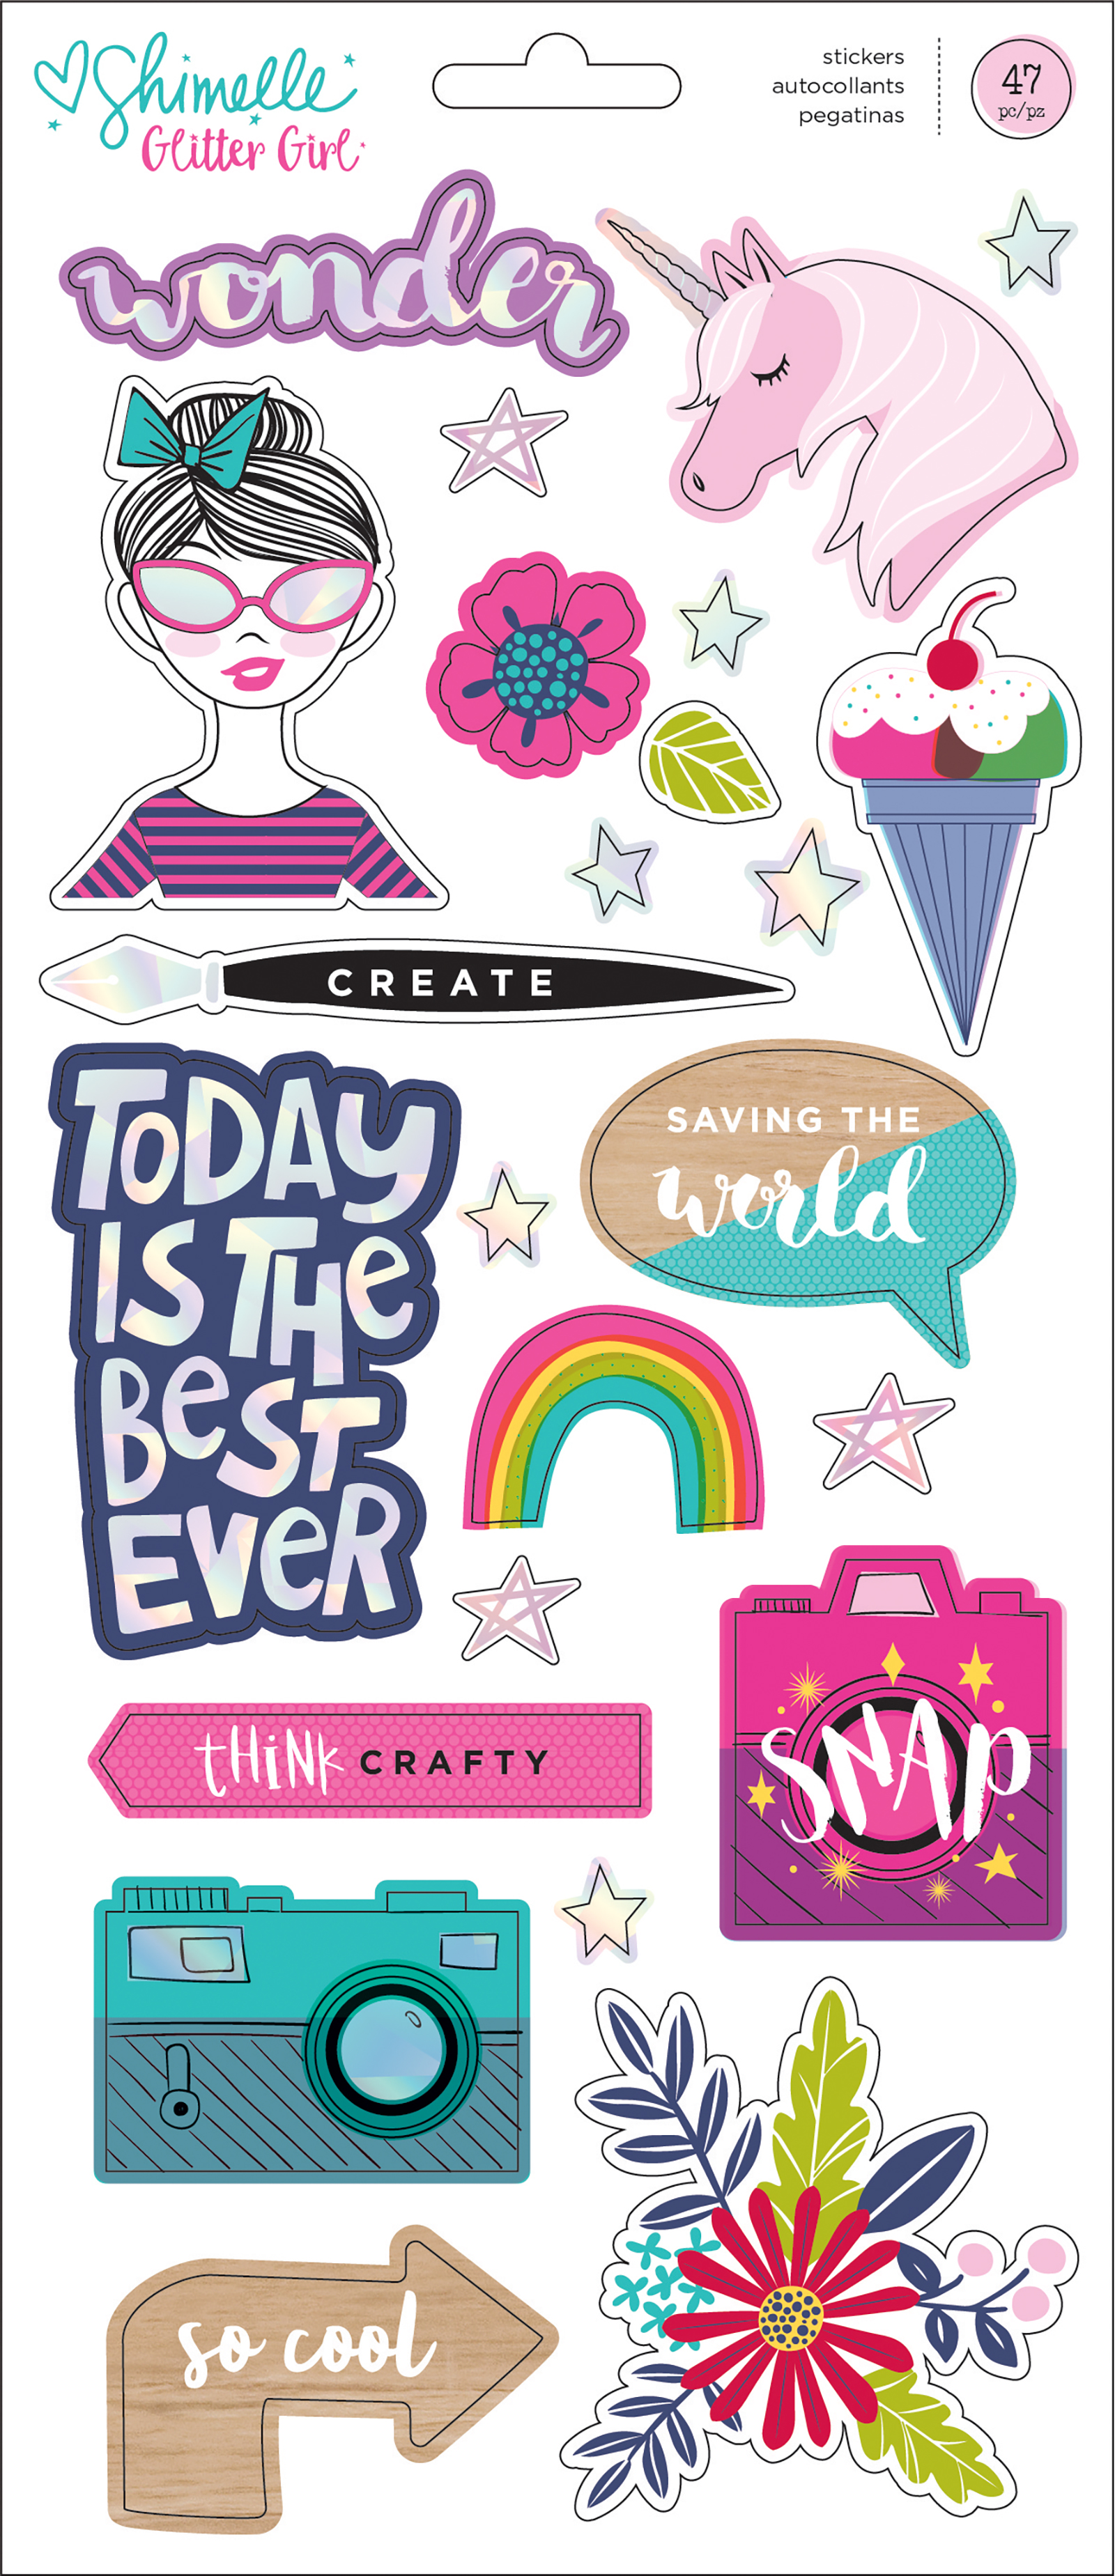 Glitter Girl Holographic Stickers